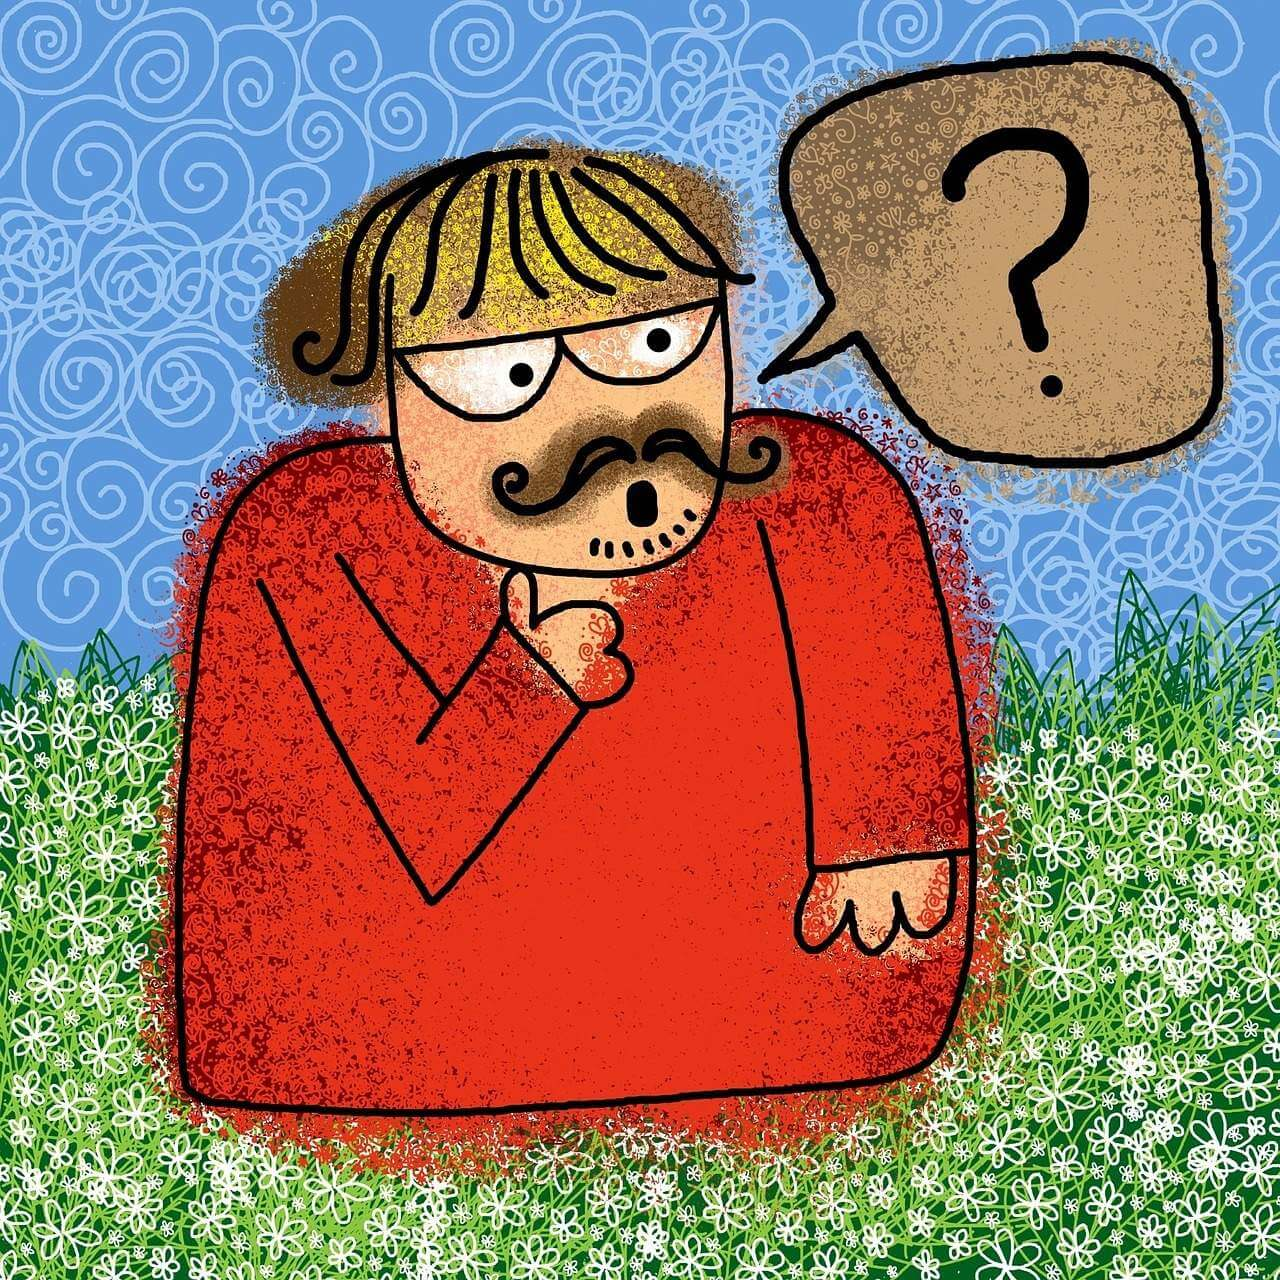 Comic-styled man with a question mark